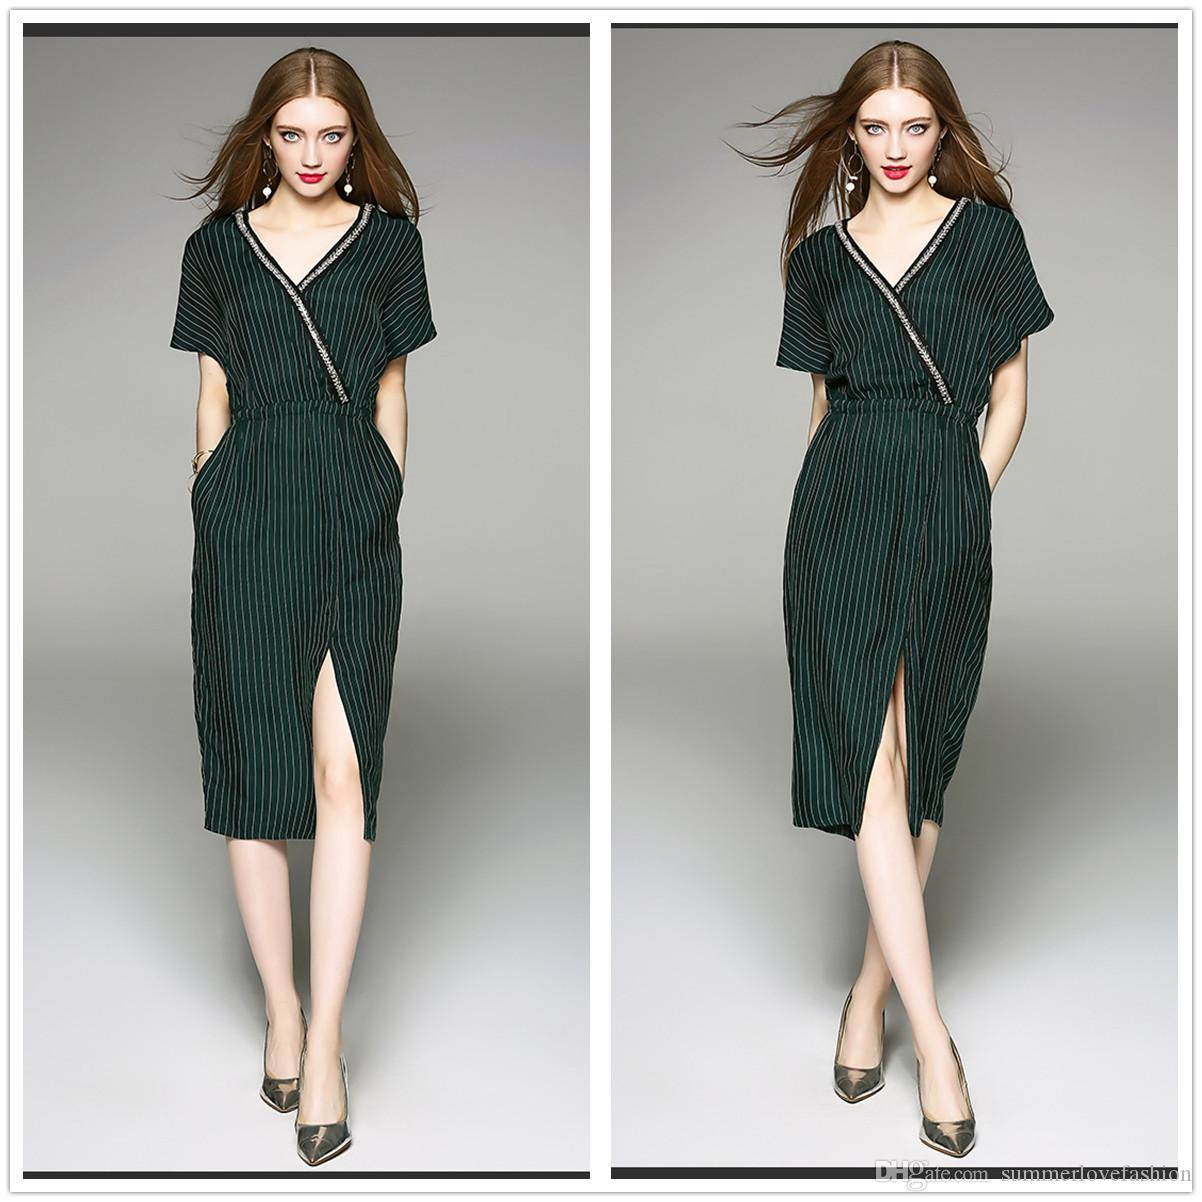 V Neck Short Sleeves Striped Casual Dresses Dark Green Beaded Split Knee  Length Women Dresses With Pocket Long Dresses Sale Dr Ess From  Summerlovefashion 1b2d83e2a